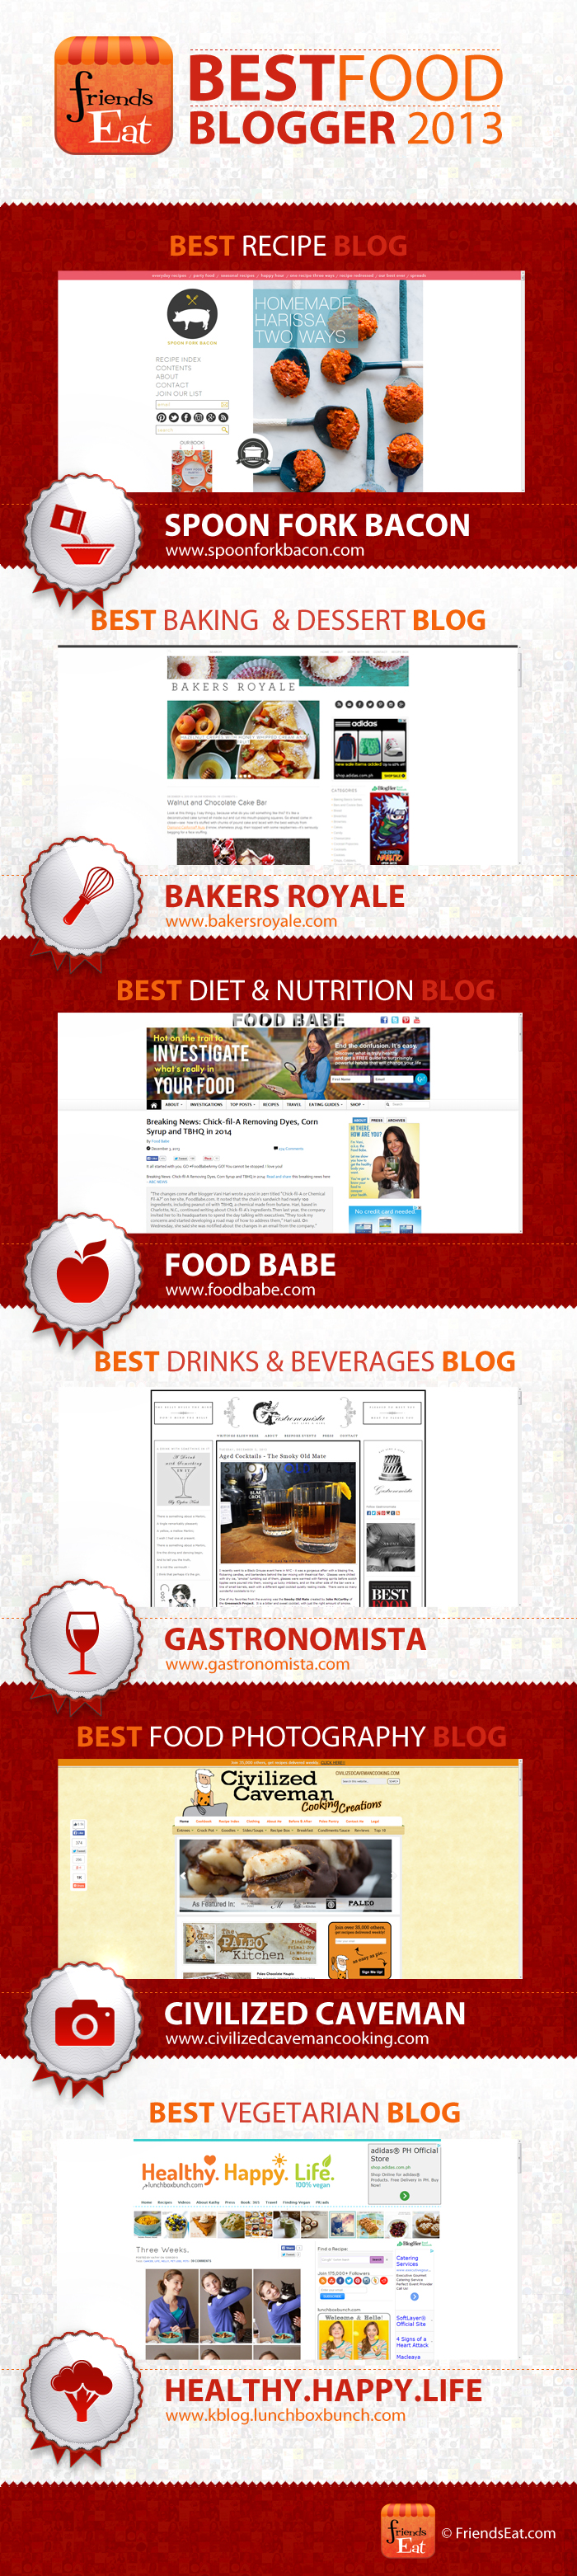 2013 BlogContestWinners1 FriendsEat 2013 Best Food Blogger Winners